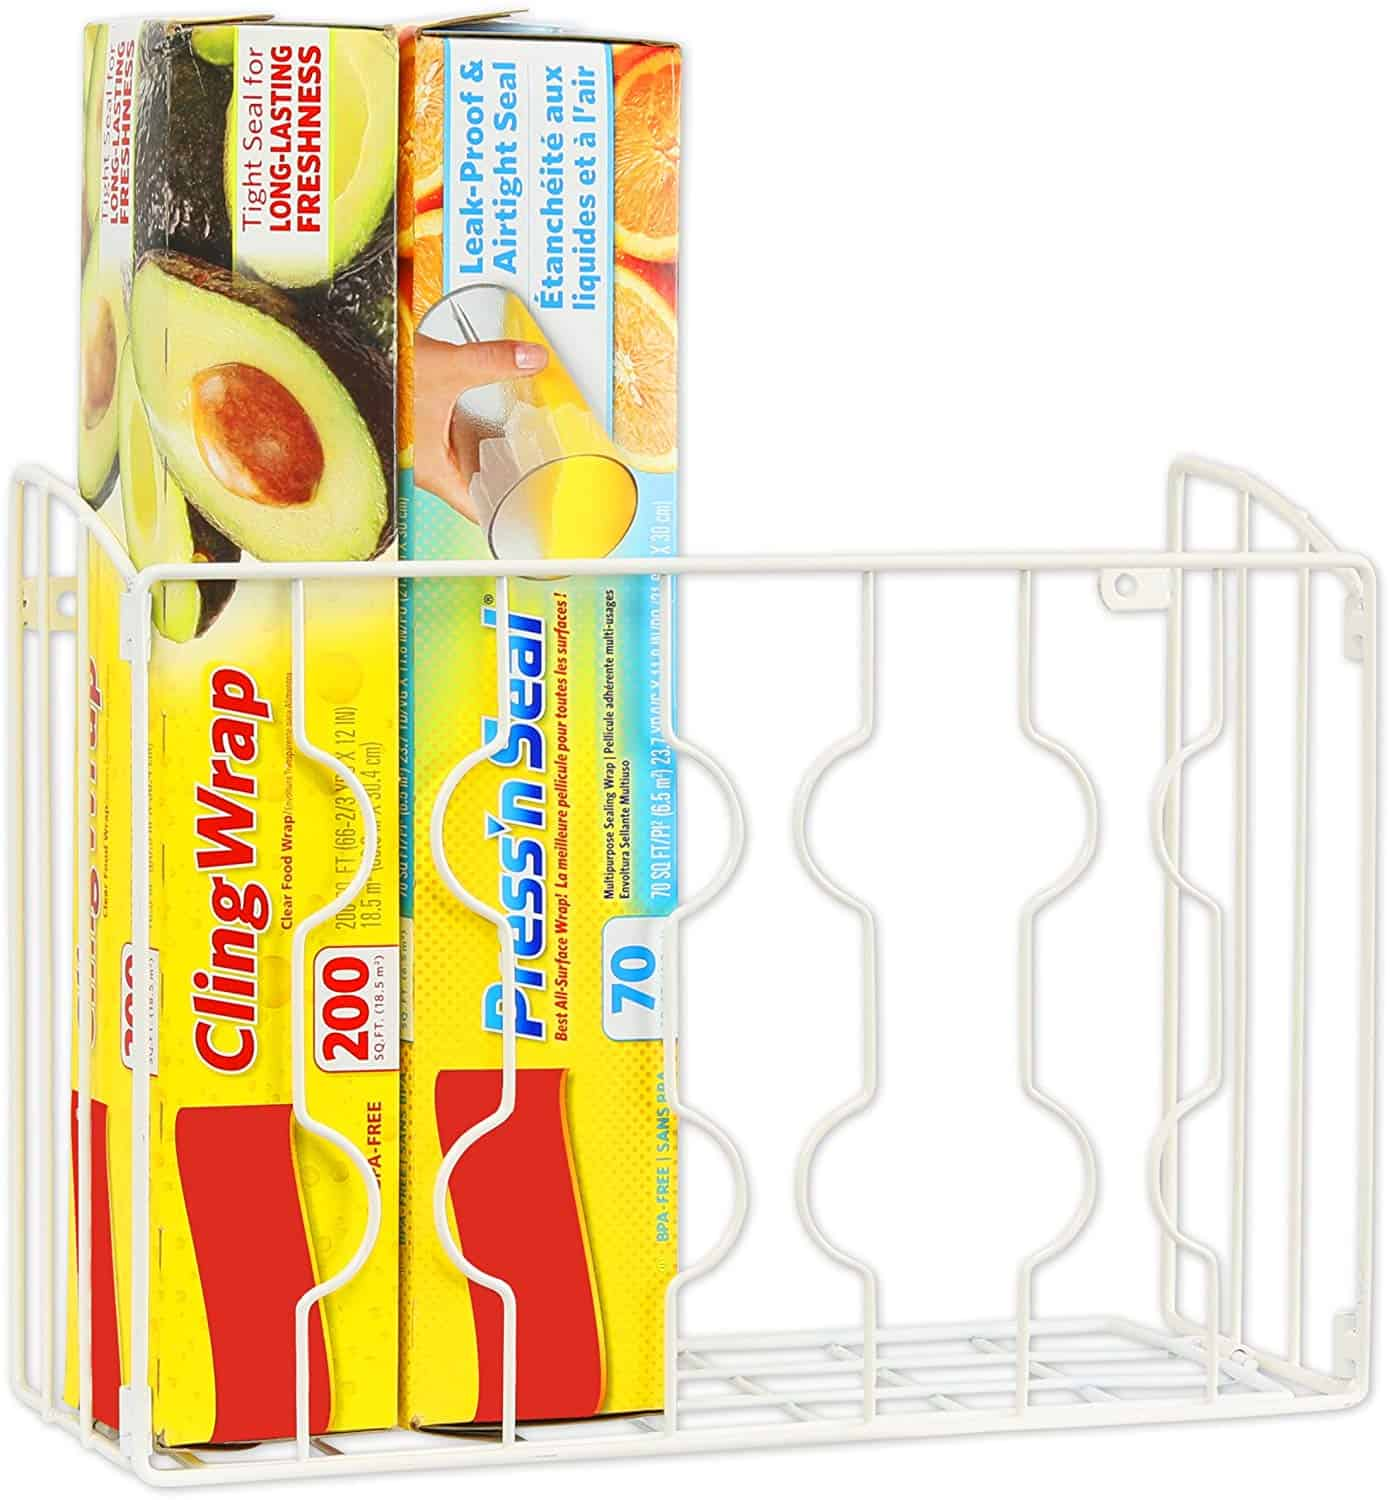 Cling Wrap Kitchen Organizer for less than $20